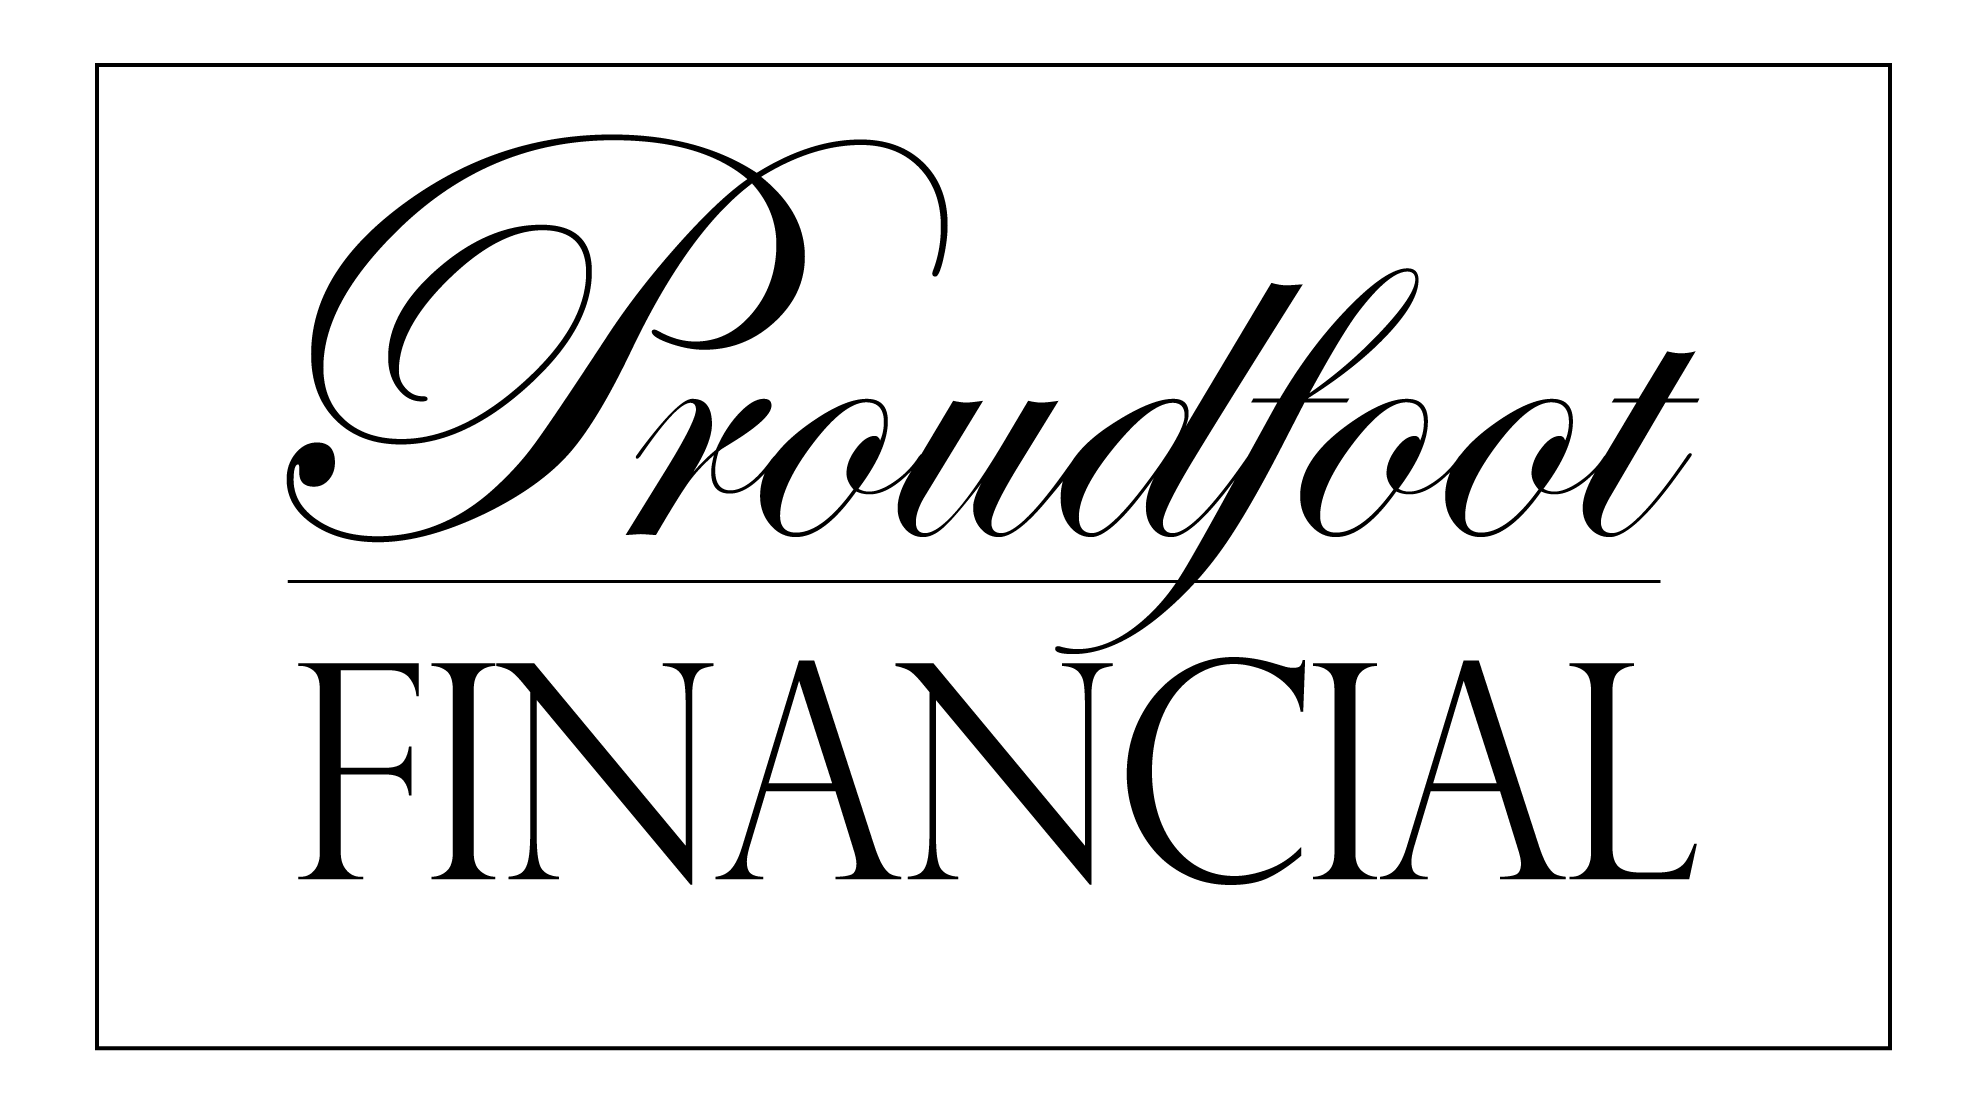 Proudfoot Financial | Vankleek Hill, Ontario